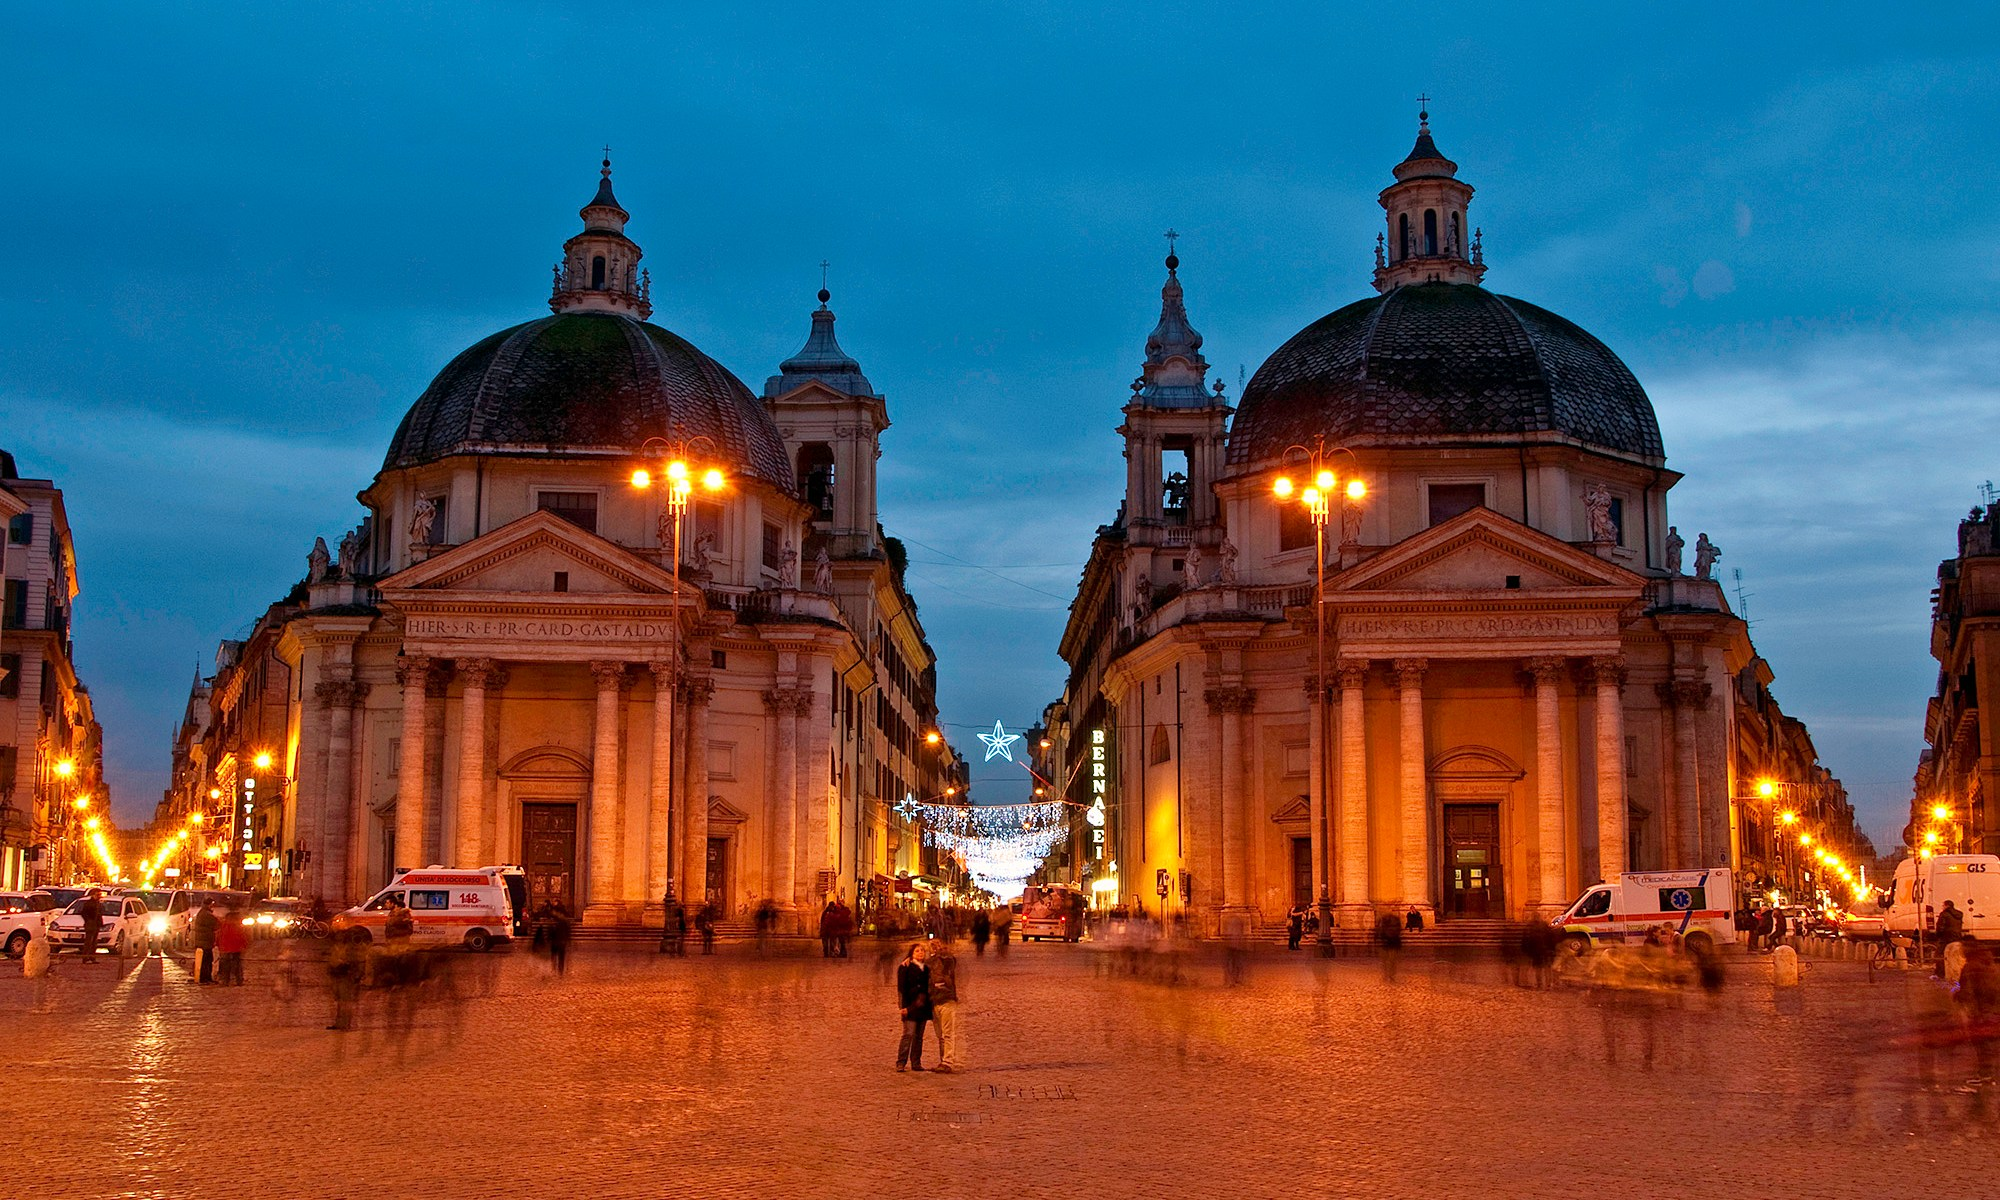 Twin Churches of Piazza del Popolo, Rome